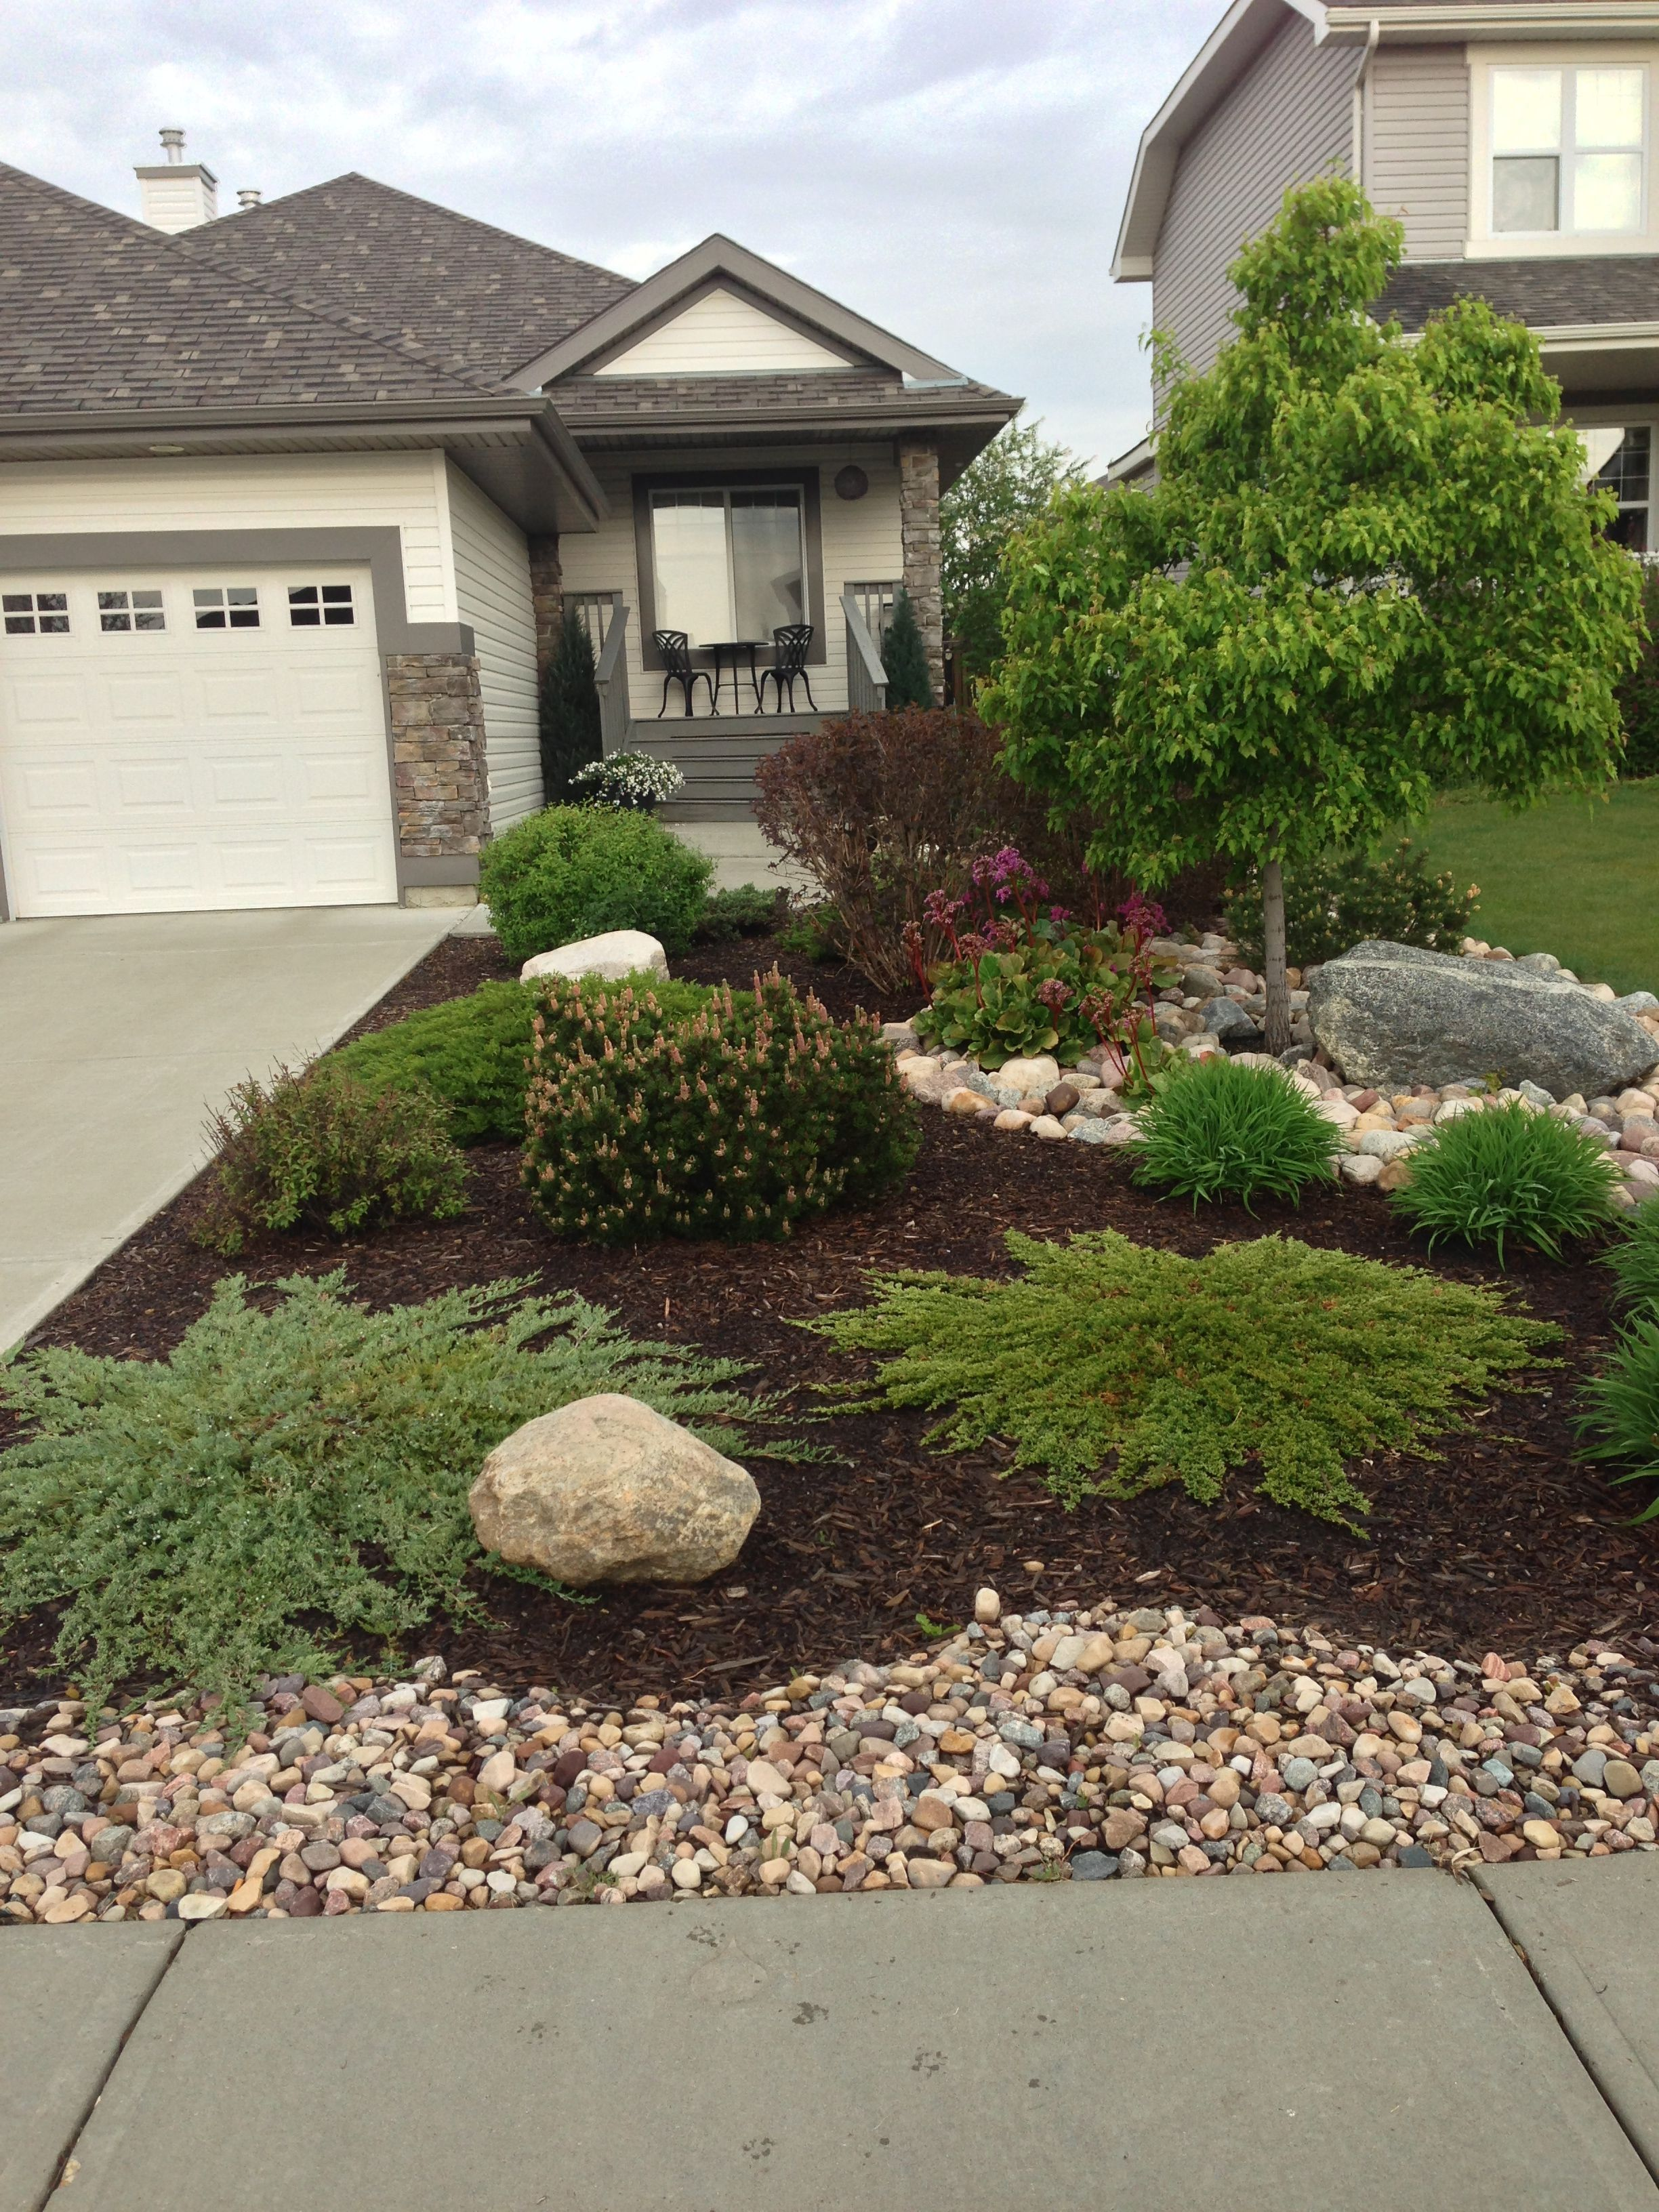 18 Simple And Small Front Yard Landscaping Ideas Farmhouse Landscaping Cheap Landscaping Ideas Front Yard Landscaping Design